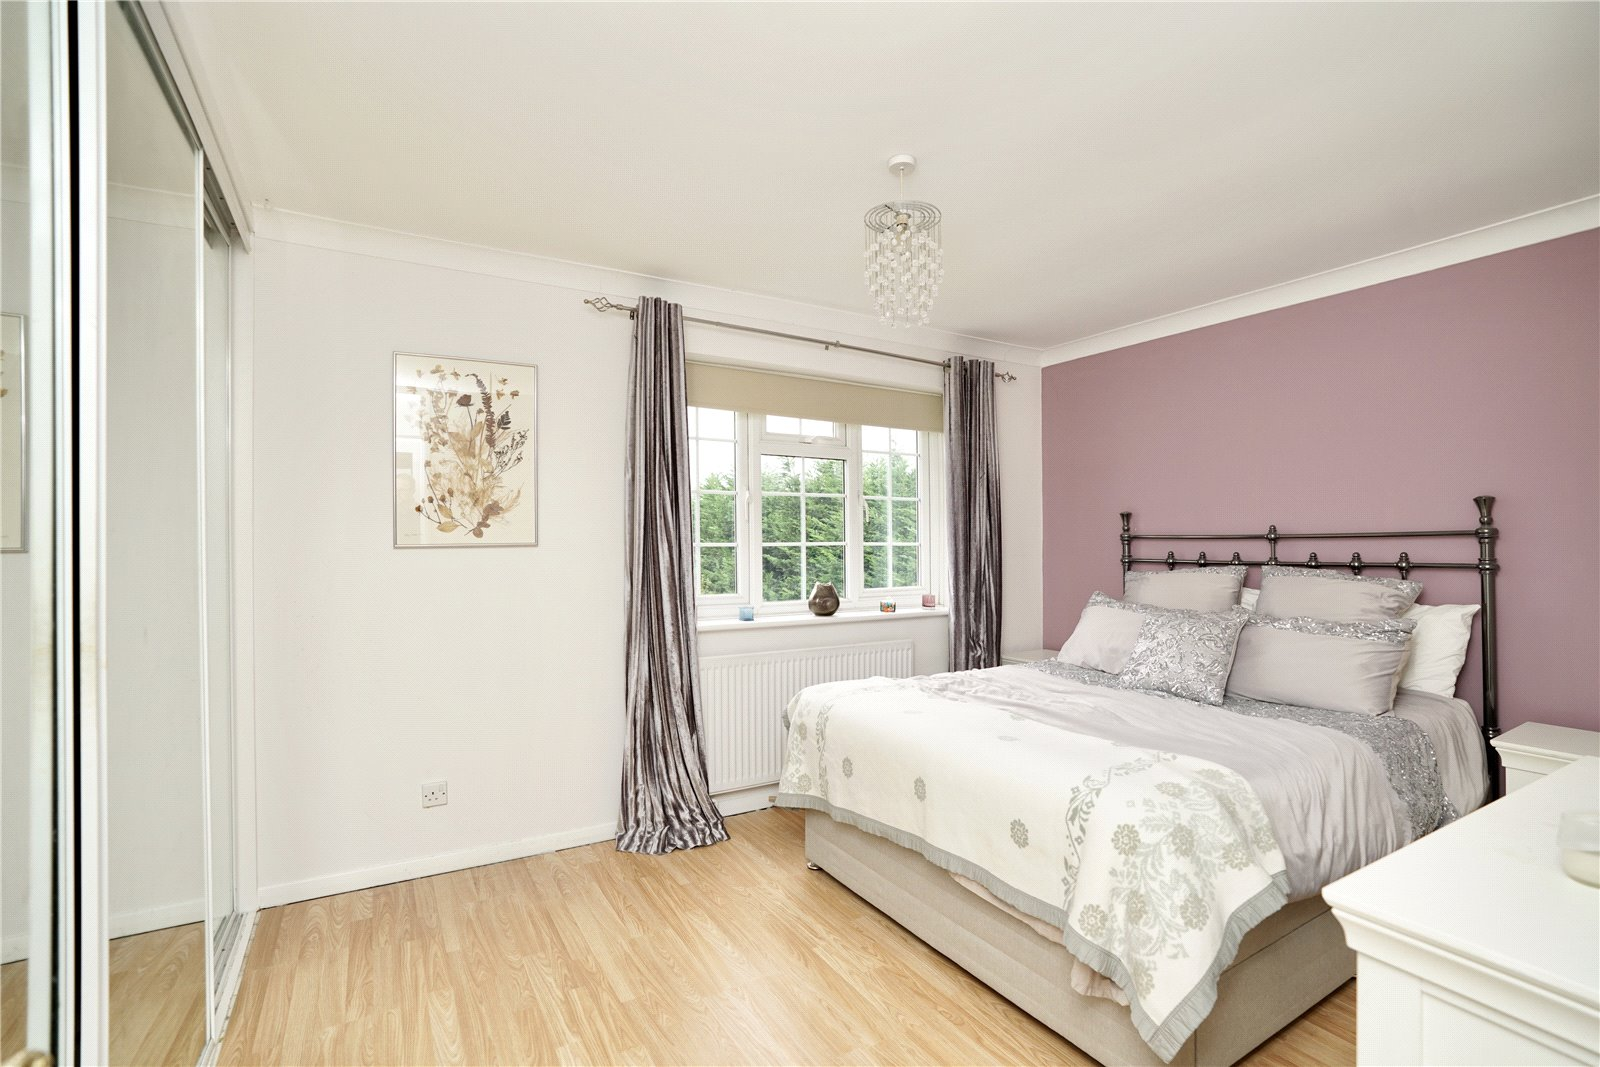 4 bed house for sale in Mint Lane, Great Paxton 10